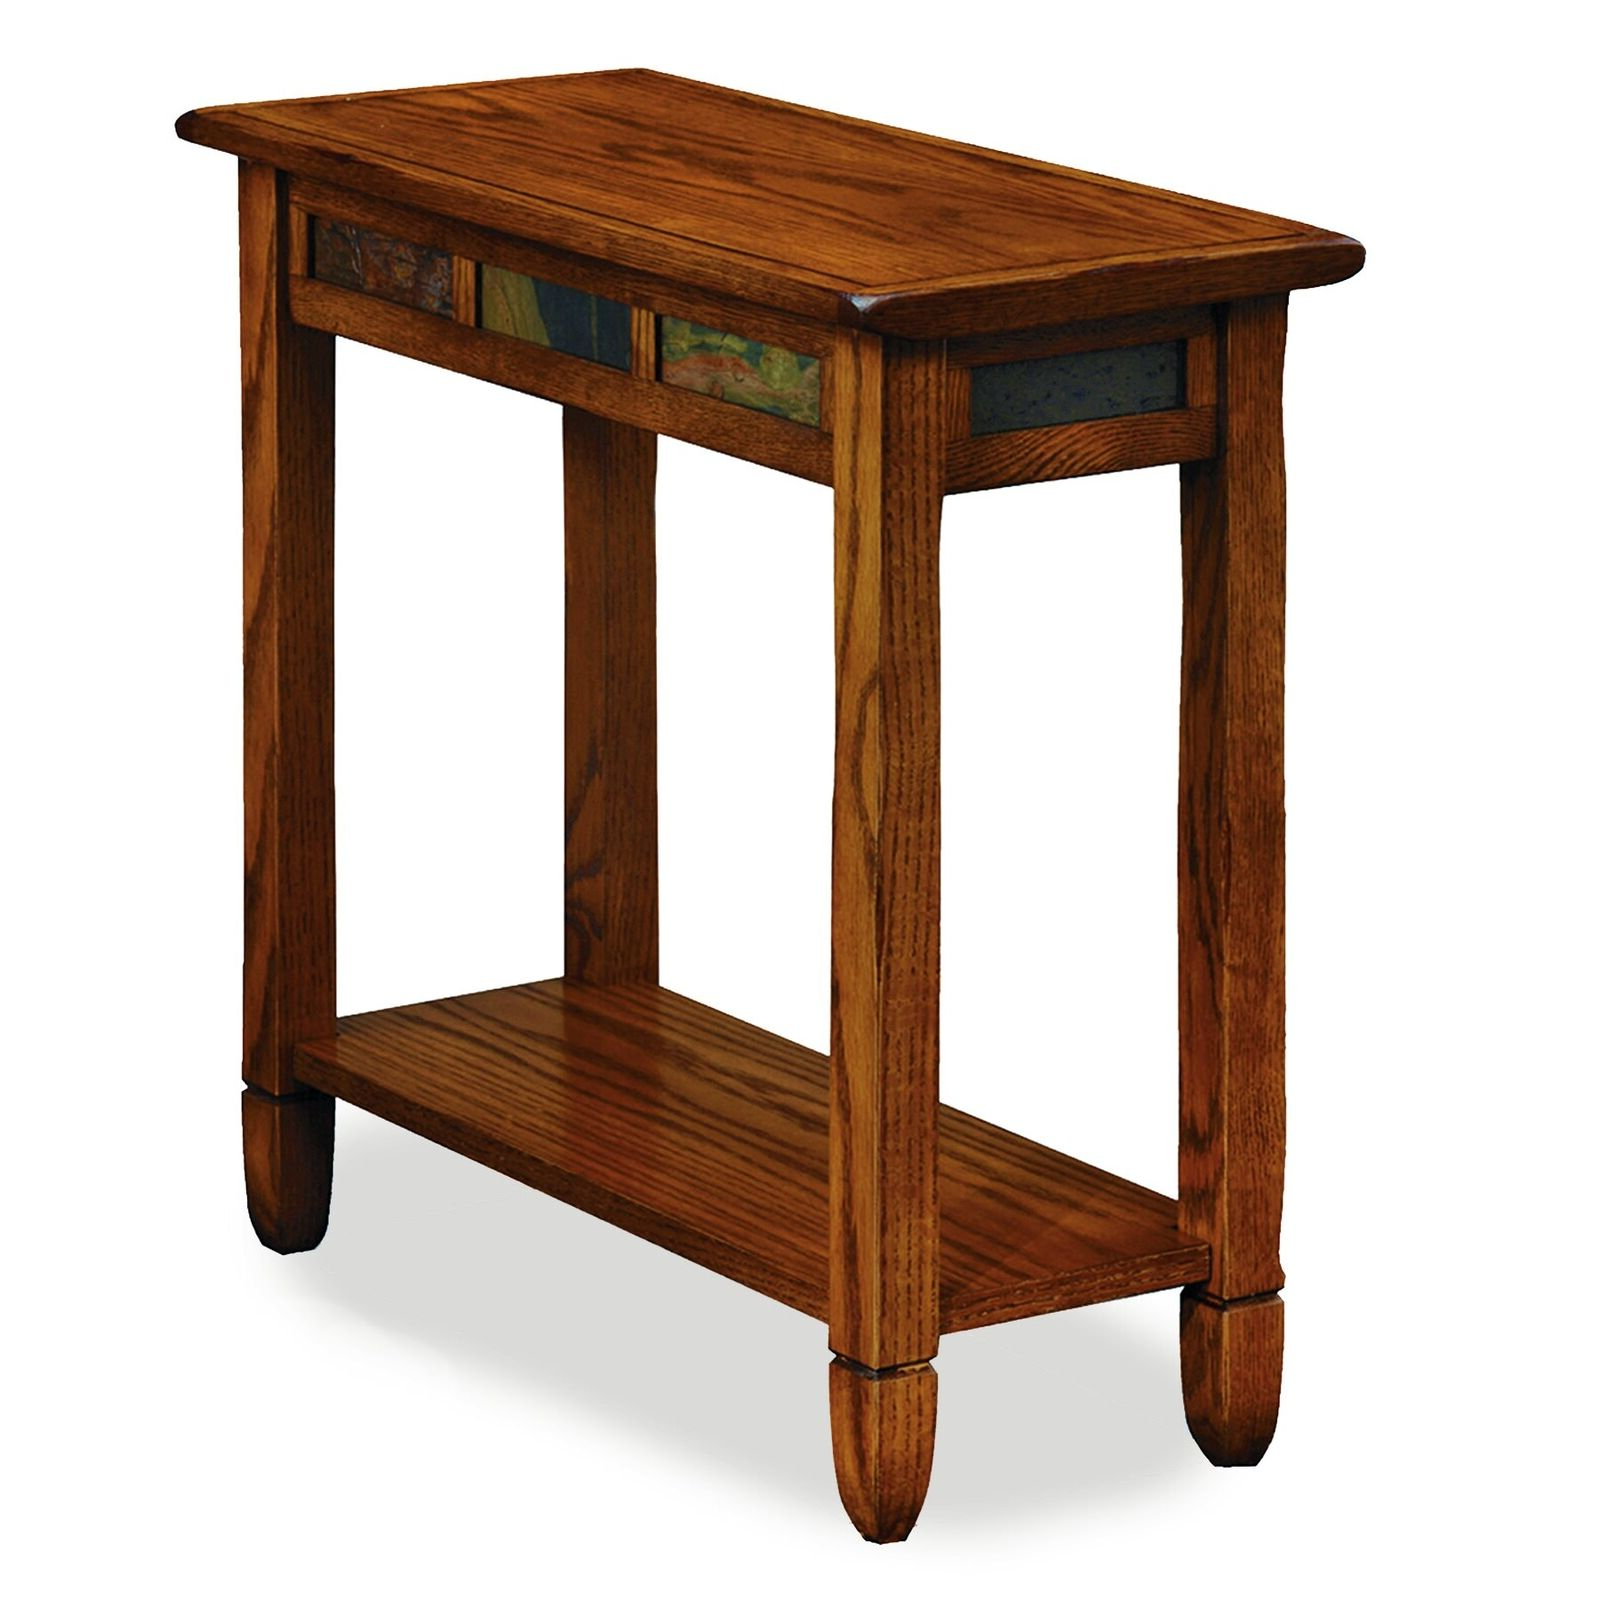 Fashionable Copper Grove Ixia Rustic Oak And Slate Tile Coffee Tables With Leick 10060 Rustic Oak Chairside End Table (View 5 of 20)